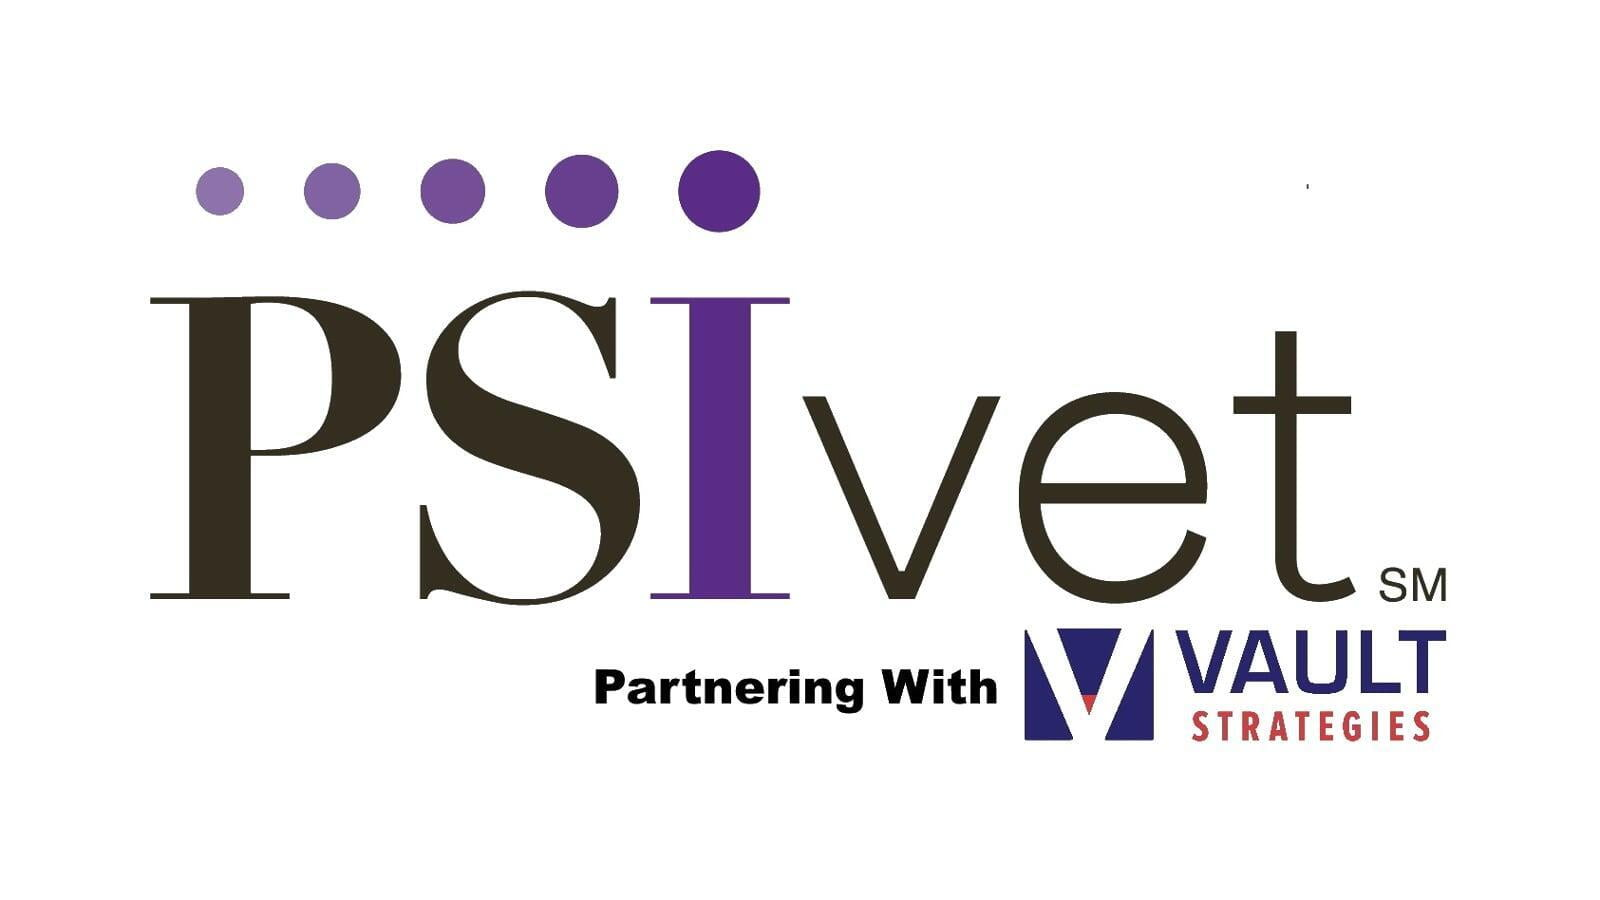 PSIvet Healthcare Initiative